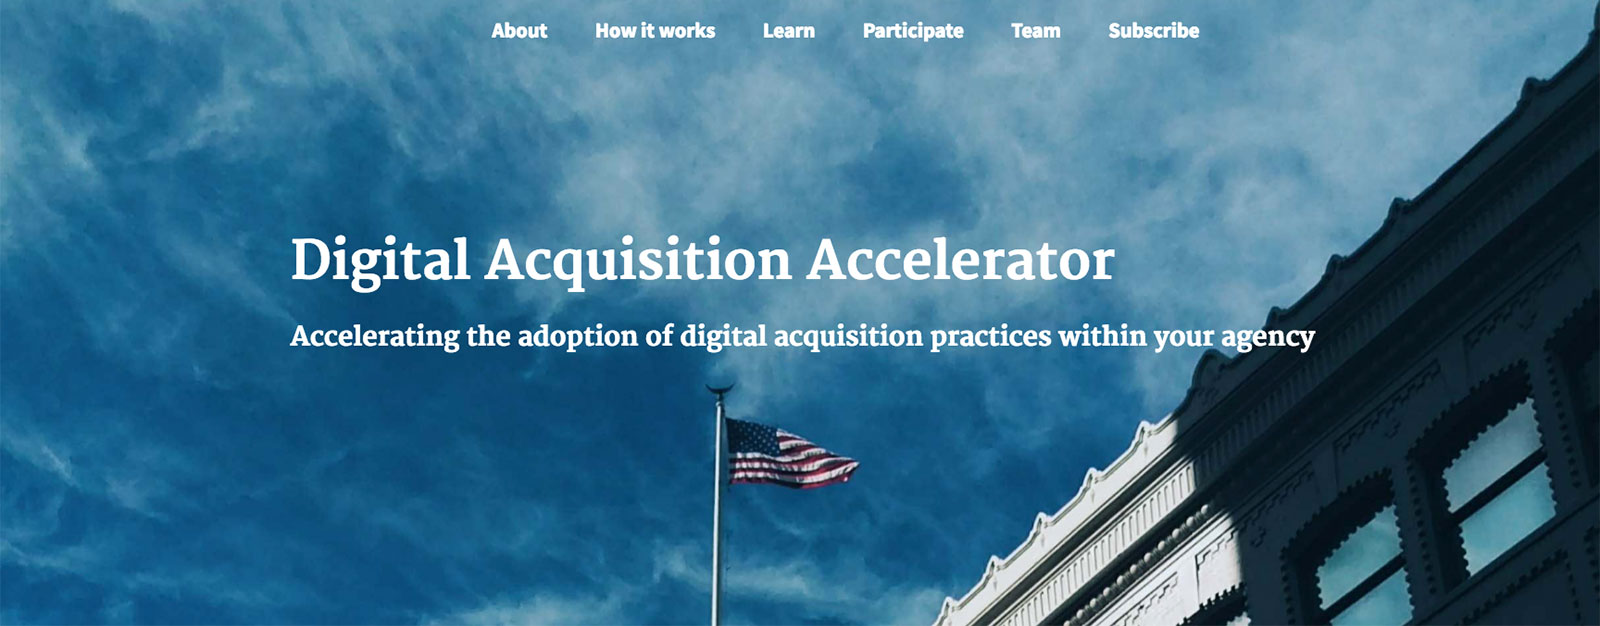 The Digital Acquisition Accelerator homepage